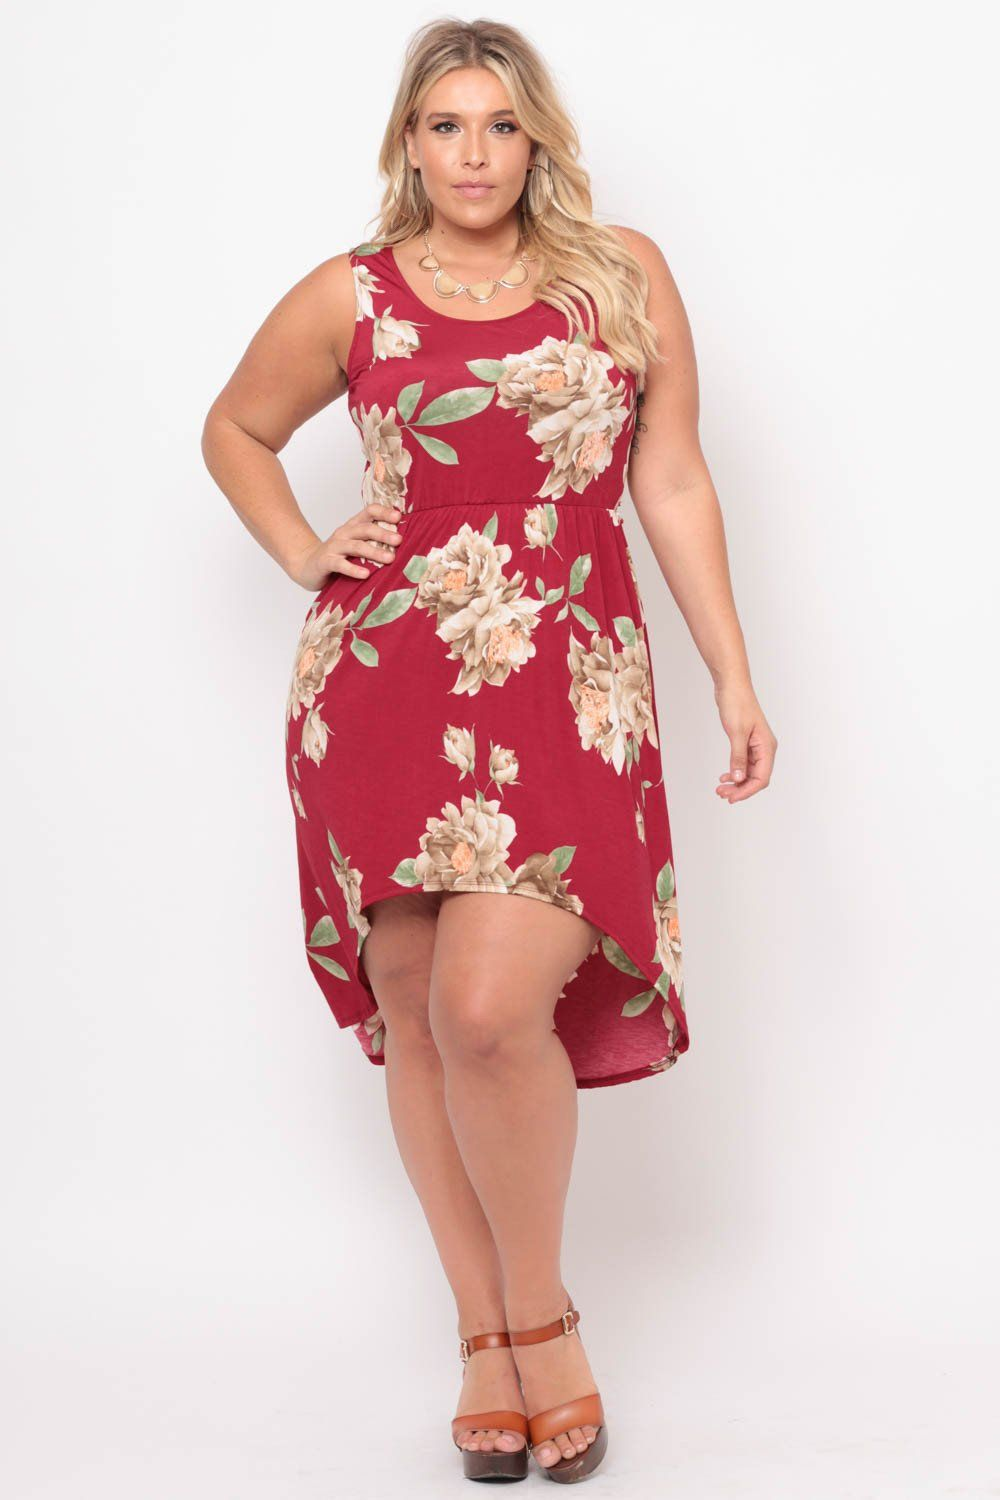 9c1d510a23be8 #curvysense #floral #burgundy #red #spring #fashion #summer #high #low # dress #style #tank